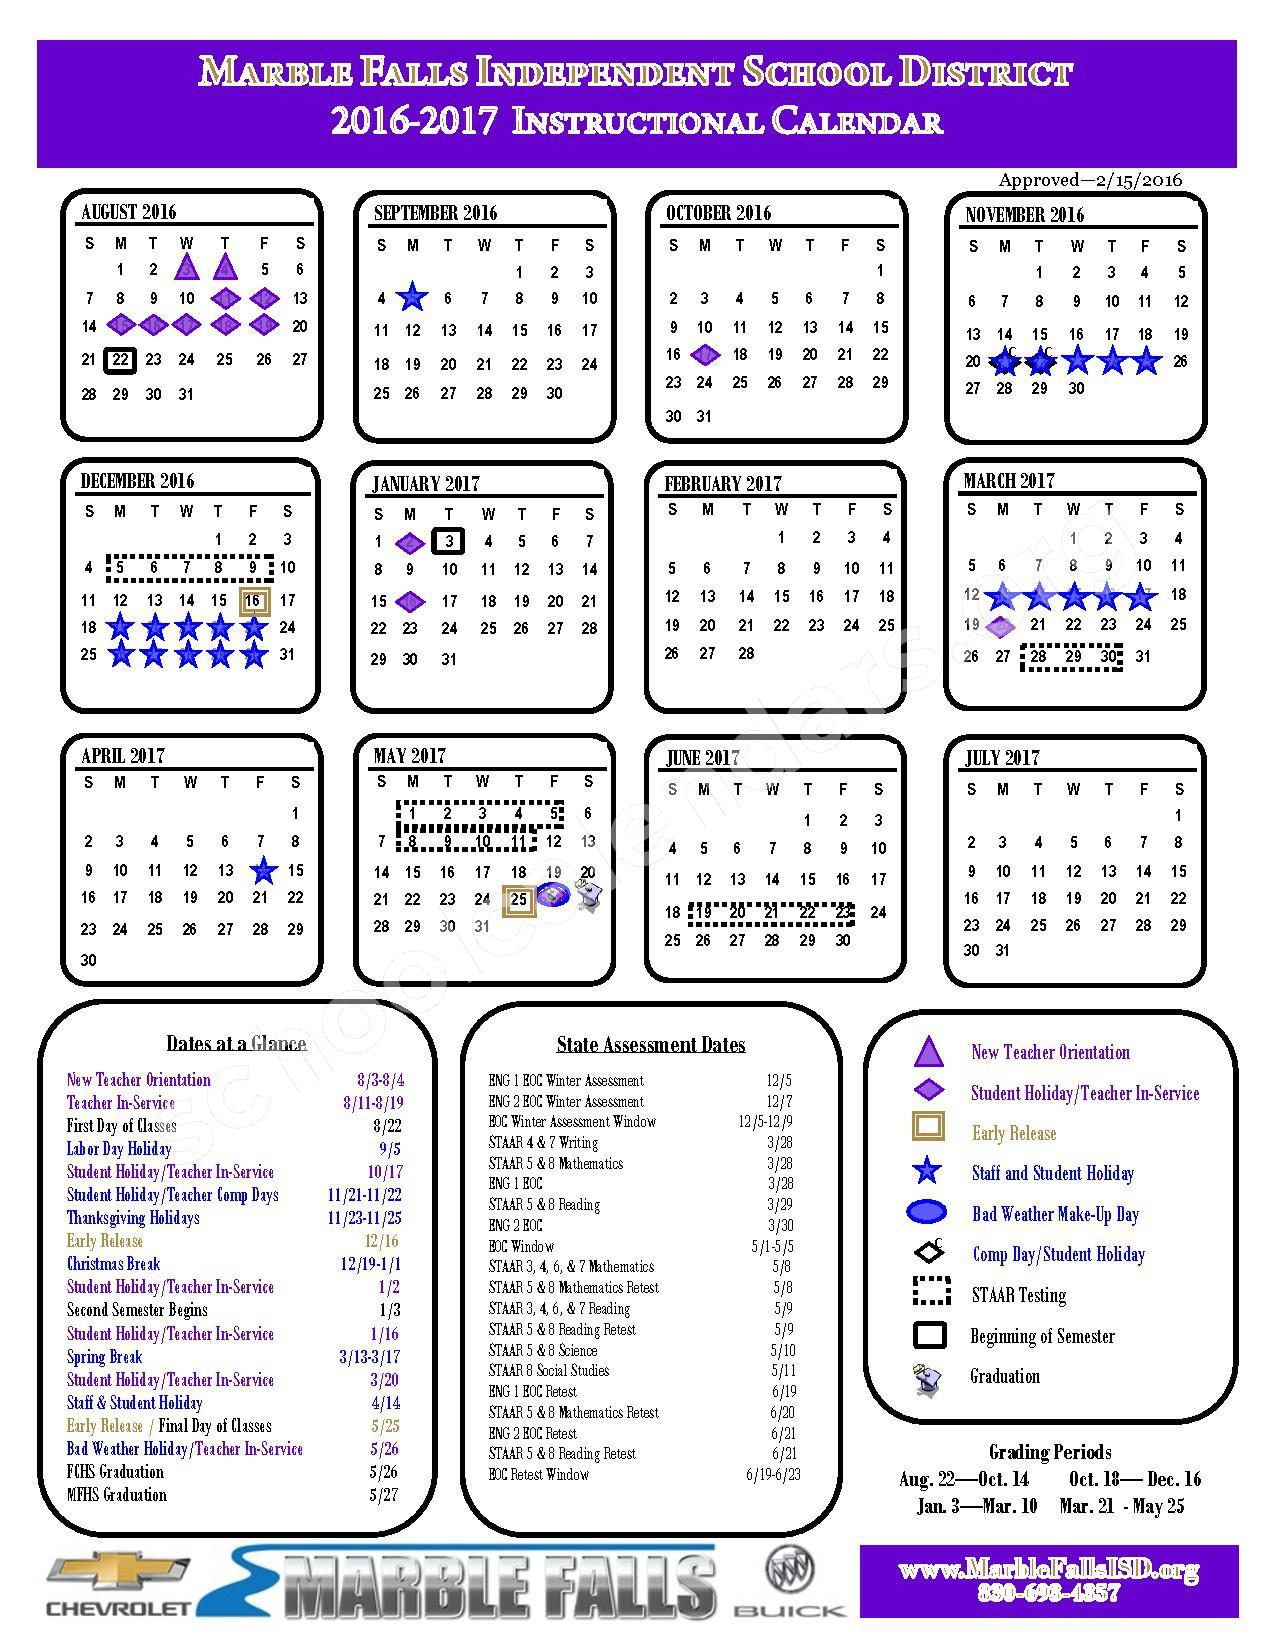 2016 - 2017 Instructional Calendar – Marble Falls Independent School District – page 1